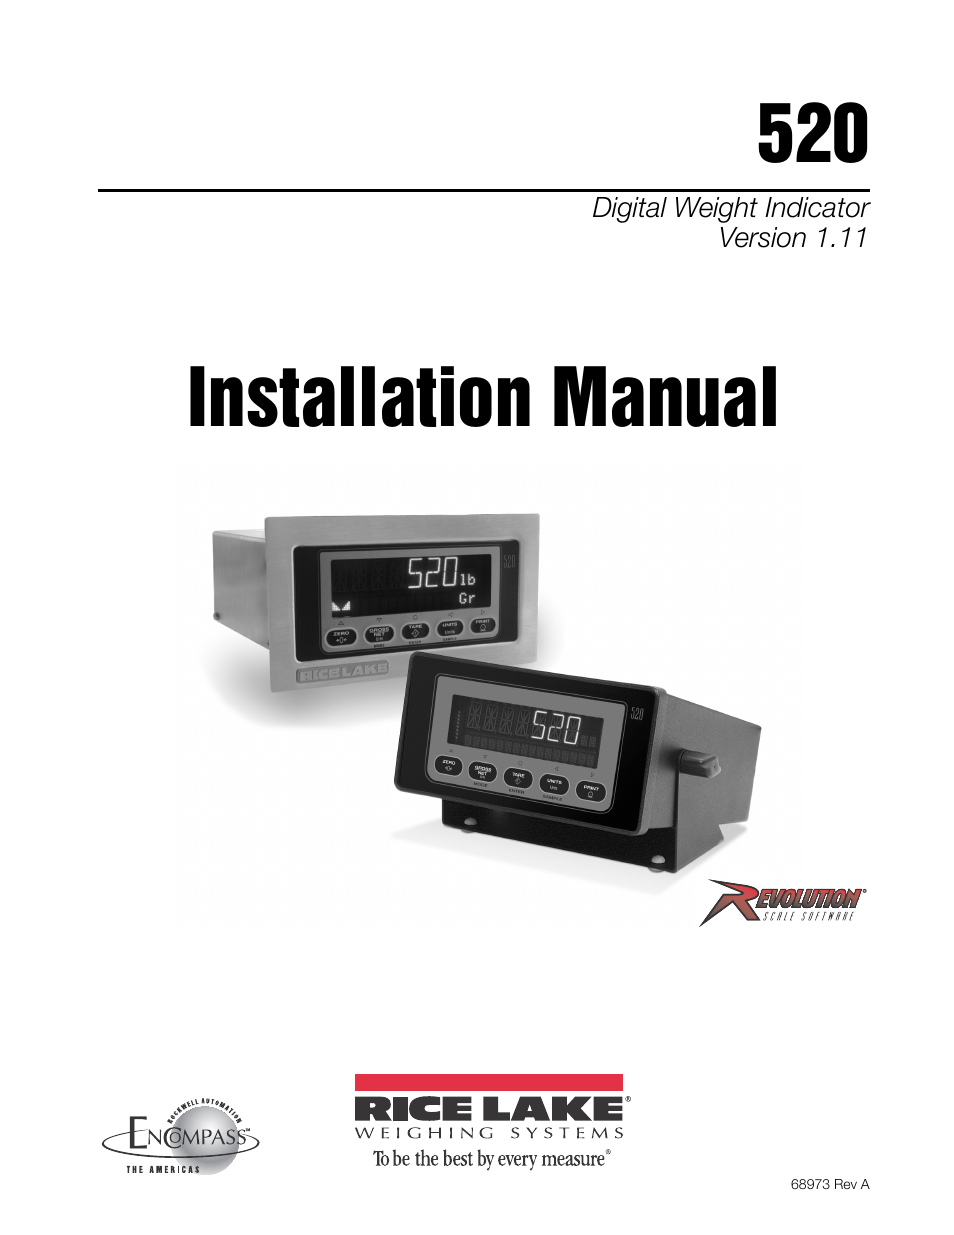 rice lake 520 hmi digital weight indicator installation manual page1 rice lake 520 hmi digital weight indicator installation manual  at gsmx.co